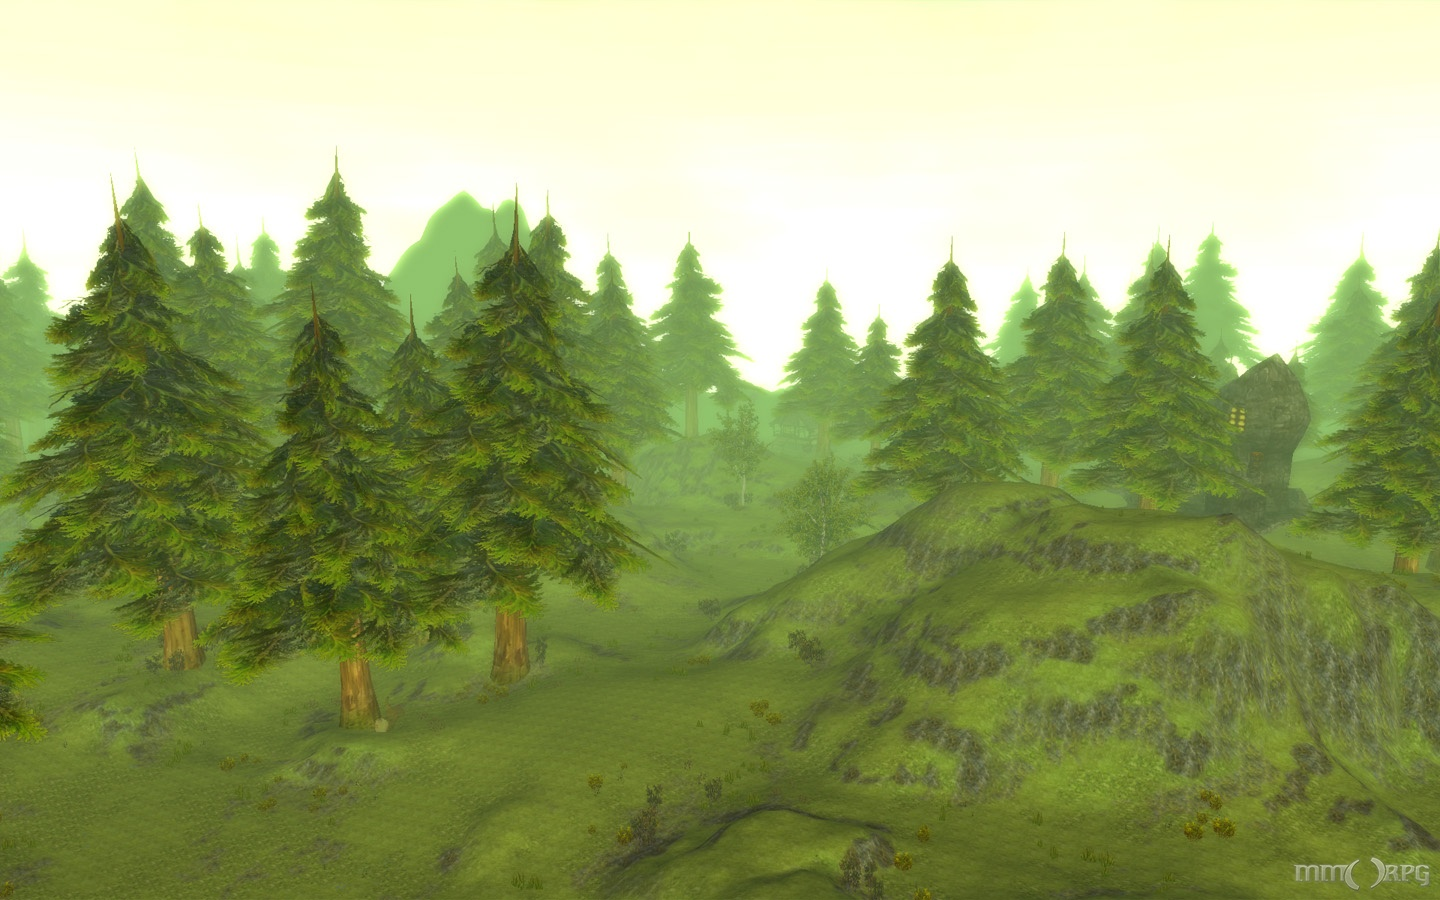 Silverfall View From Atop a Mountain